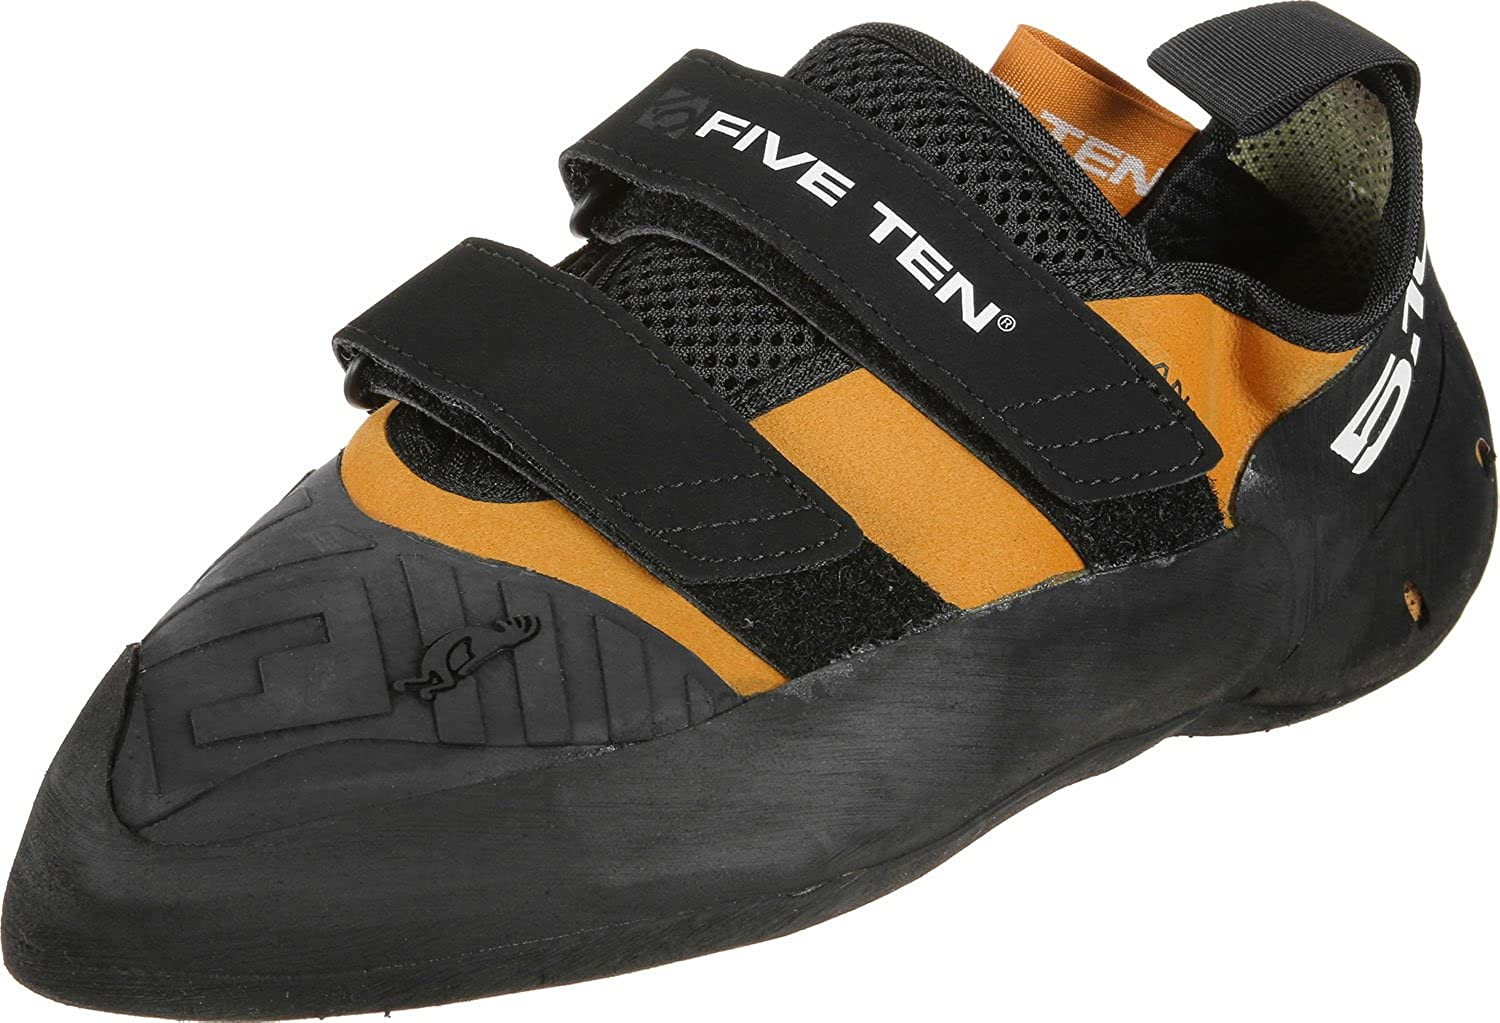 Five Ten Men's Anasazi Pro Rock Climbing Shoe